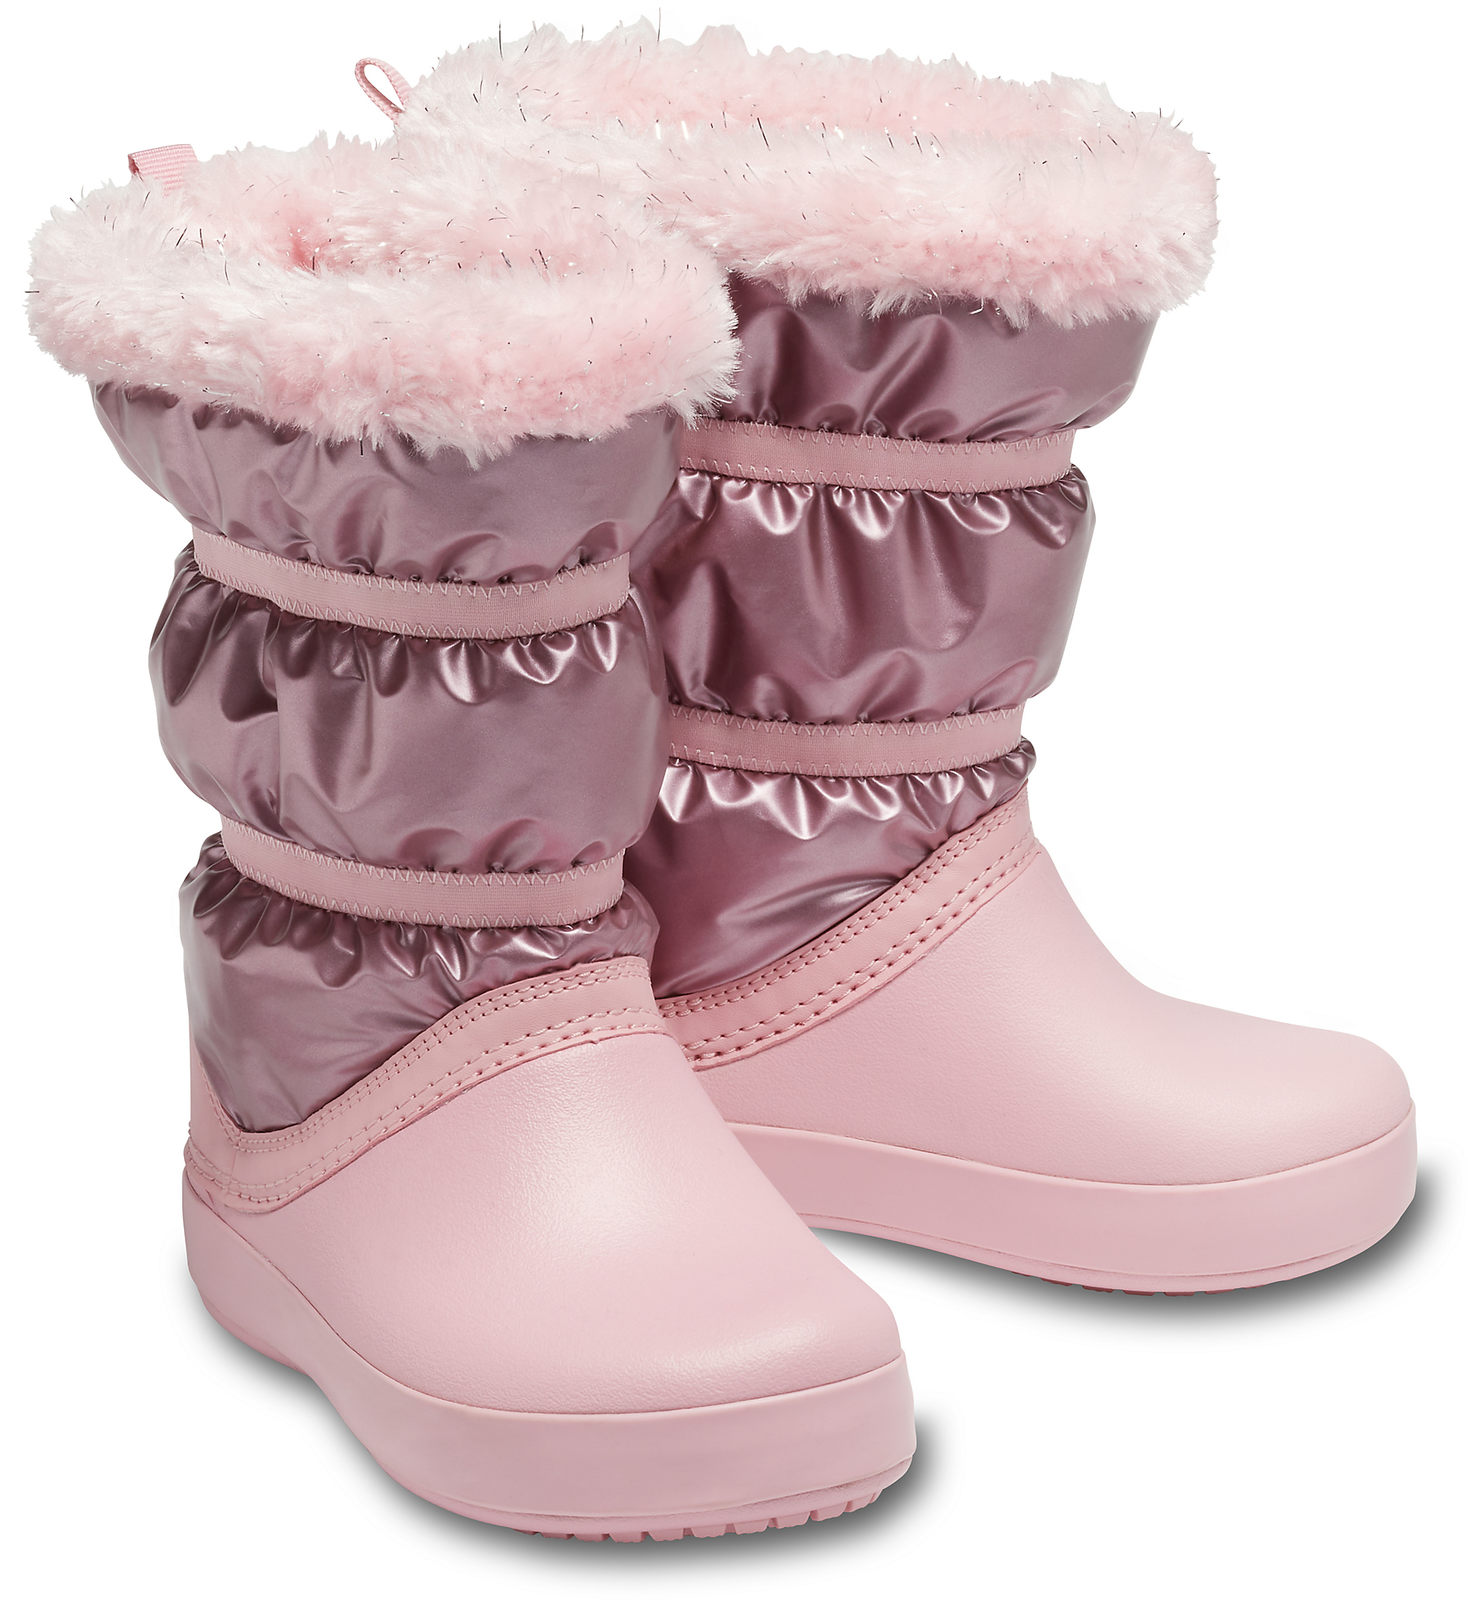 Crocs pudrové dívčí sněhule CB LodgePoint Metallic Boot G Rose Gold Metallic